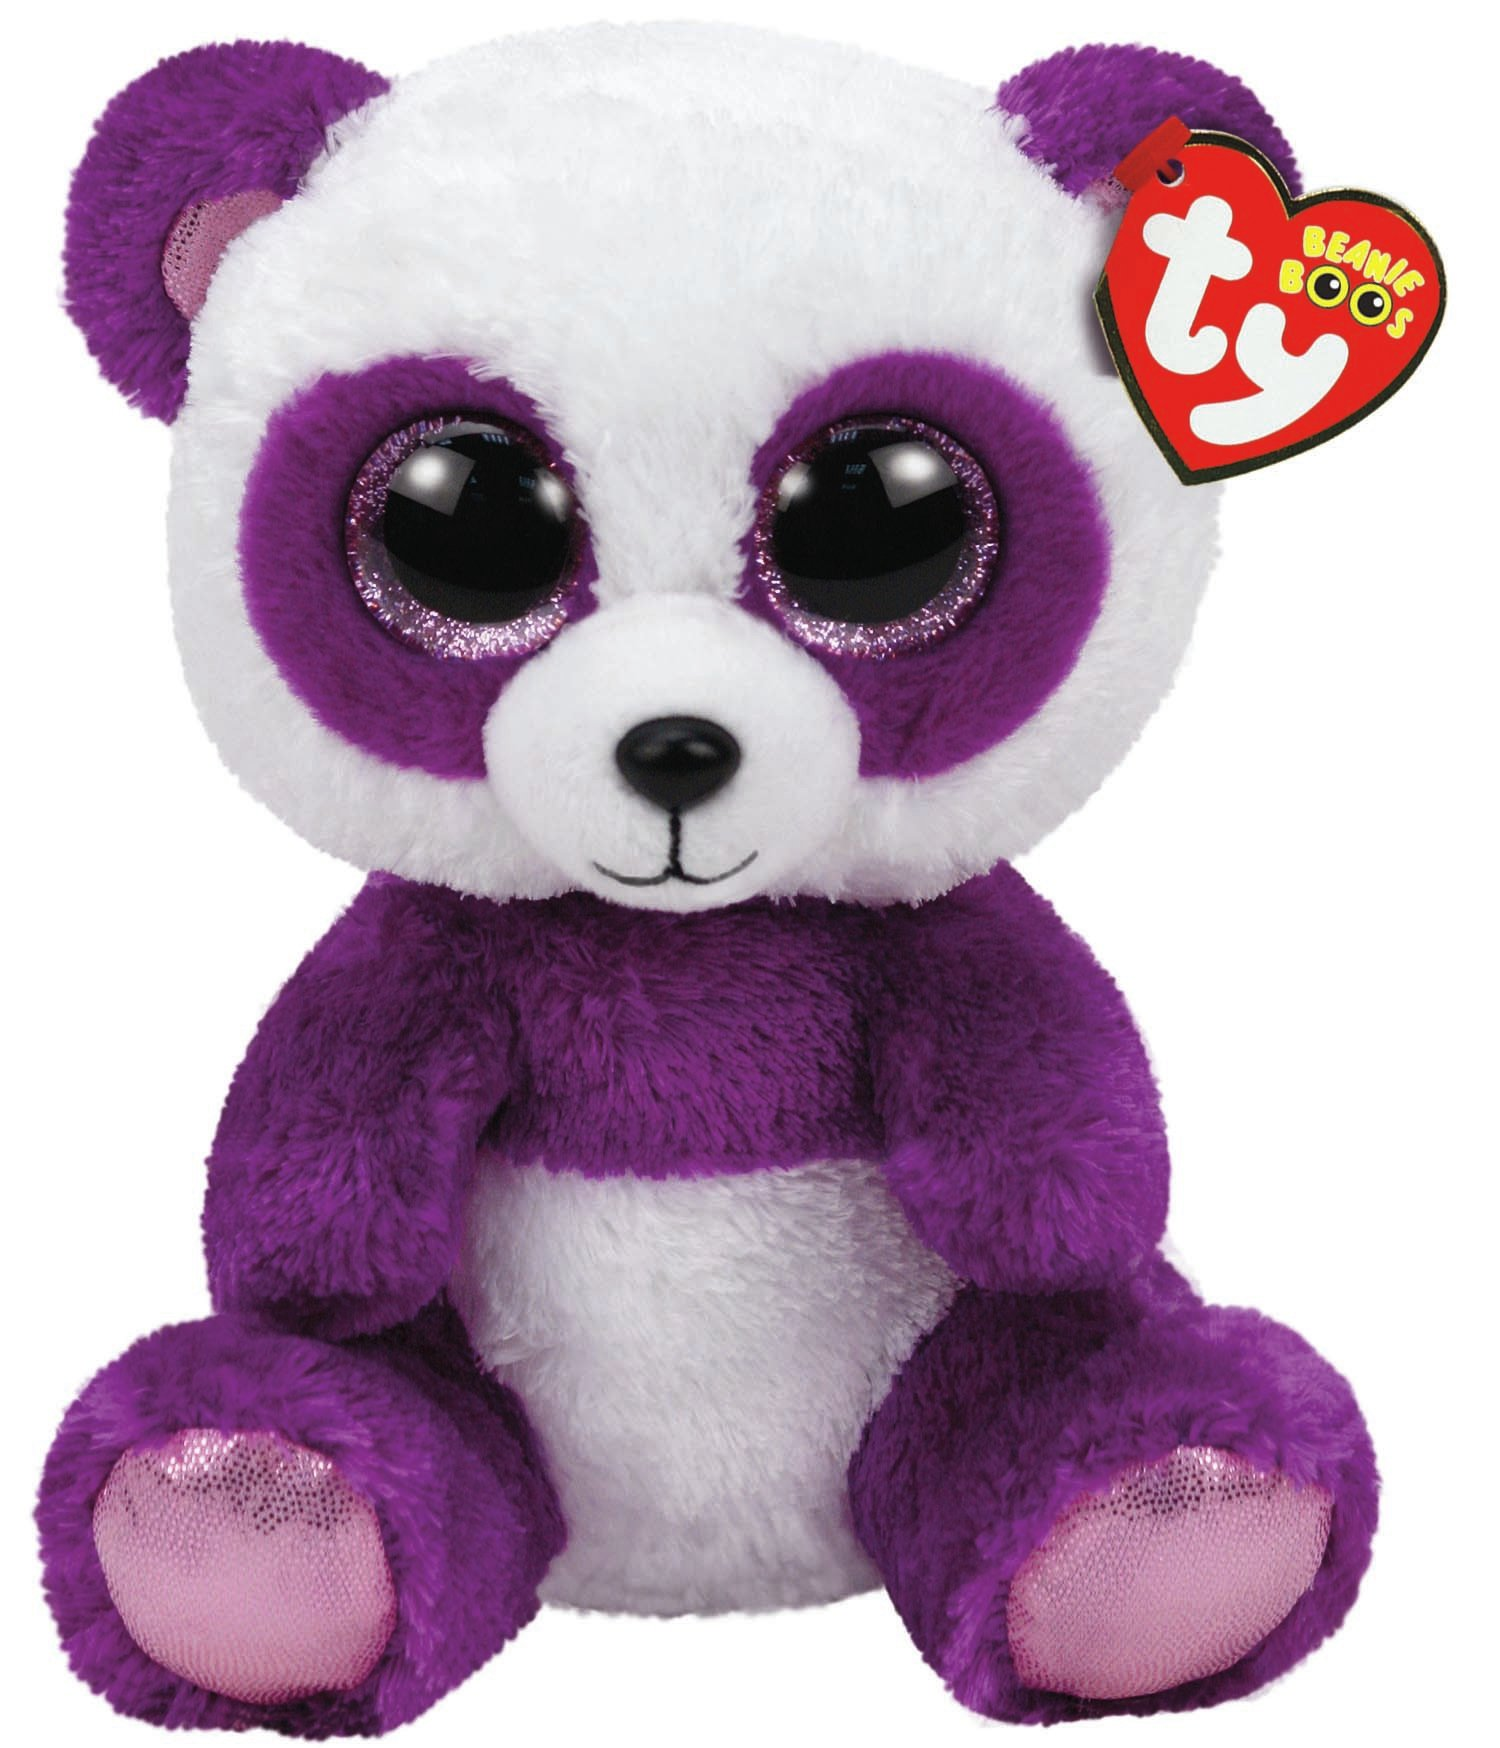 TY Beanie Boos - Boom Boom the Panda (Medium)